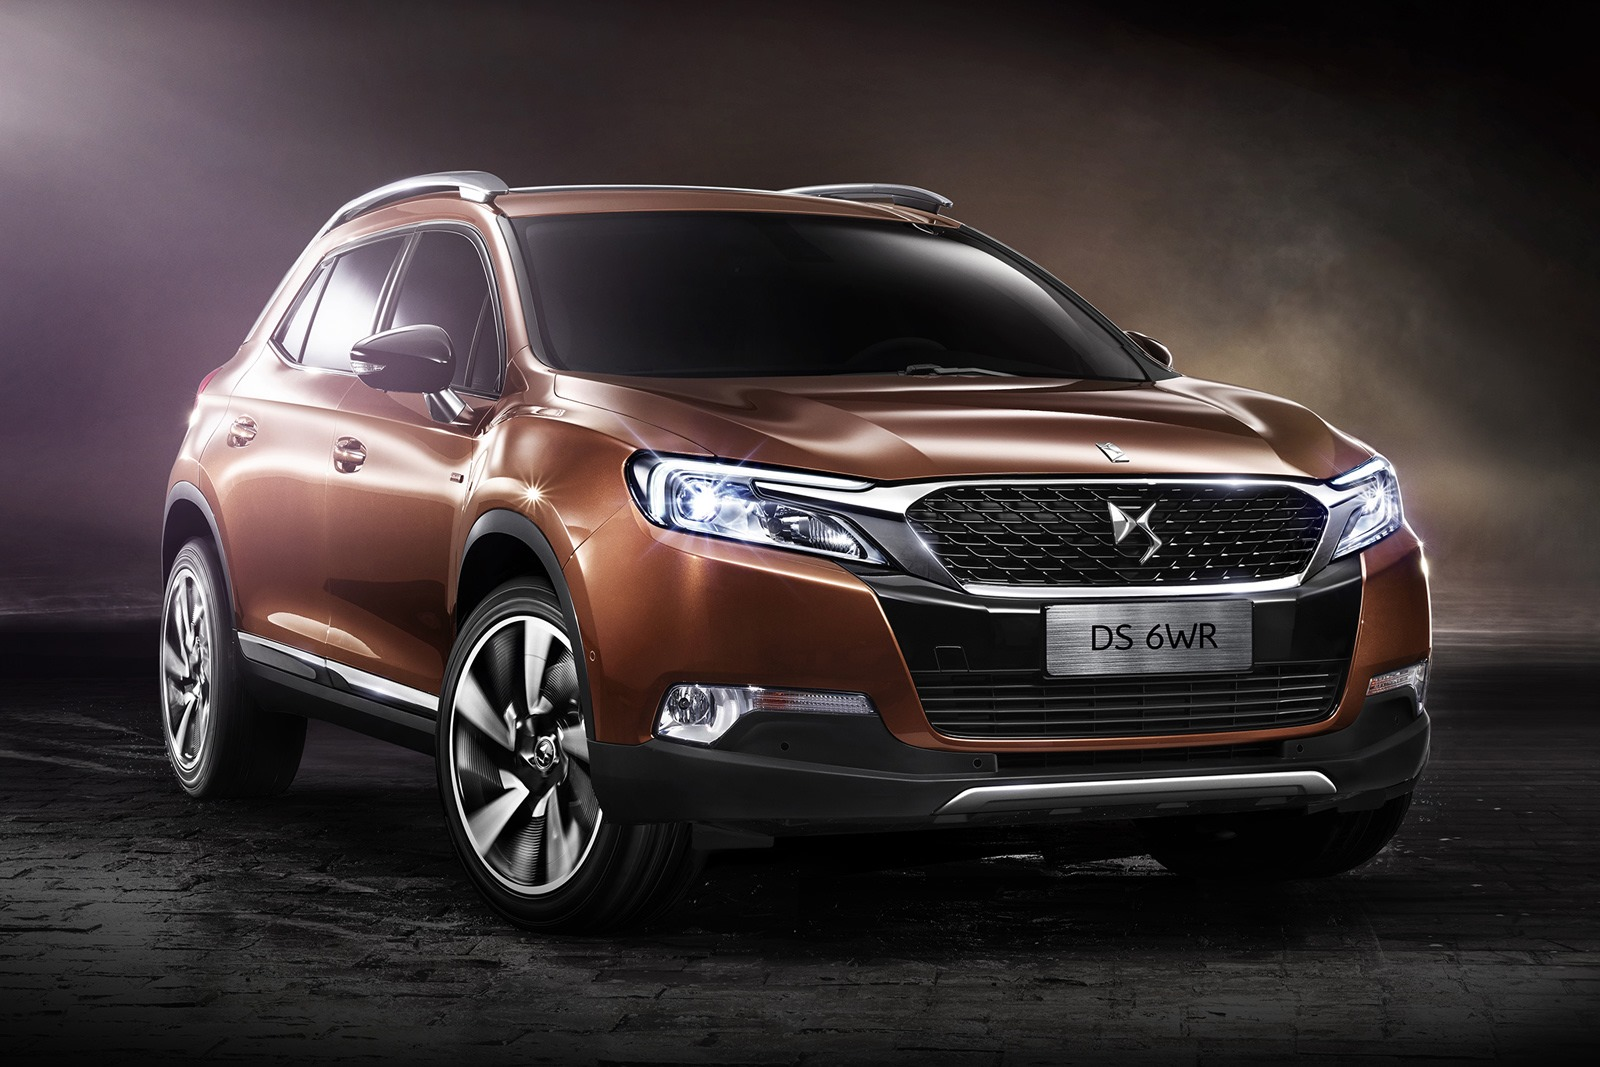 The DS 6WR-The First French Luxury SUV Interior Revealed in China News Image